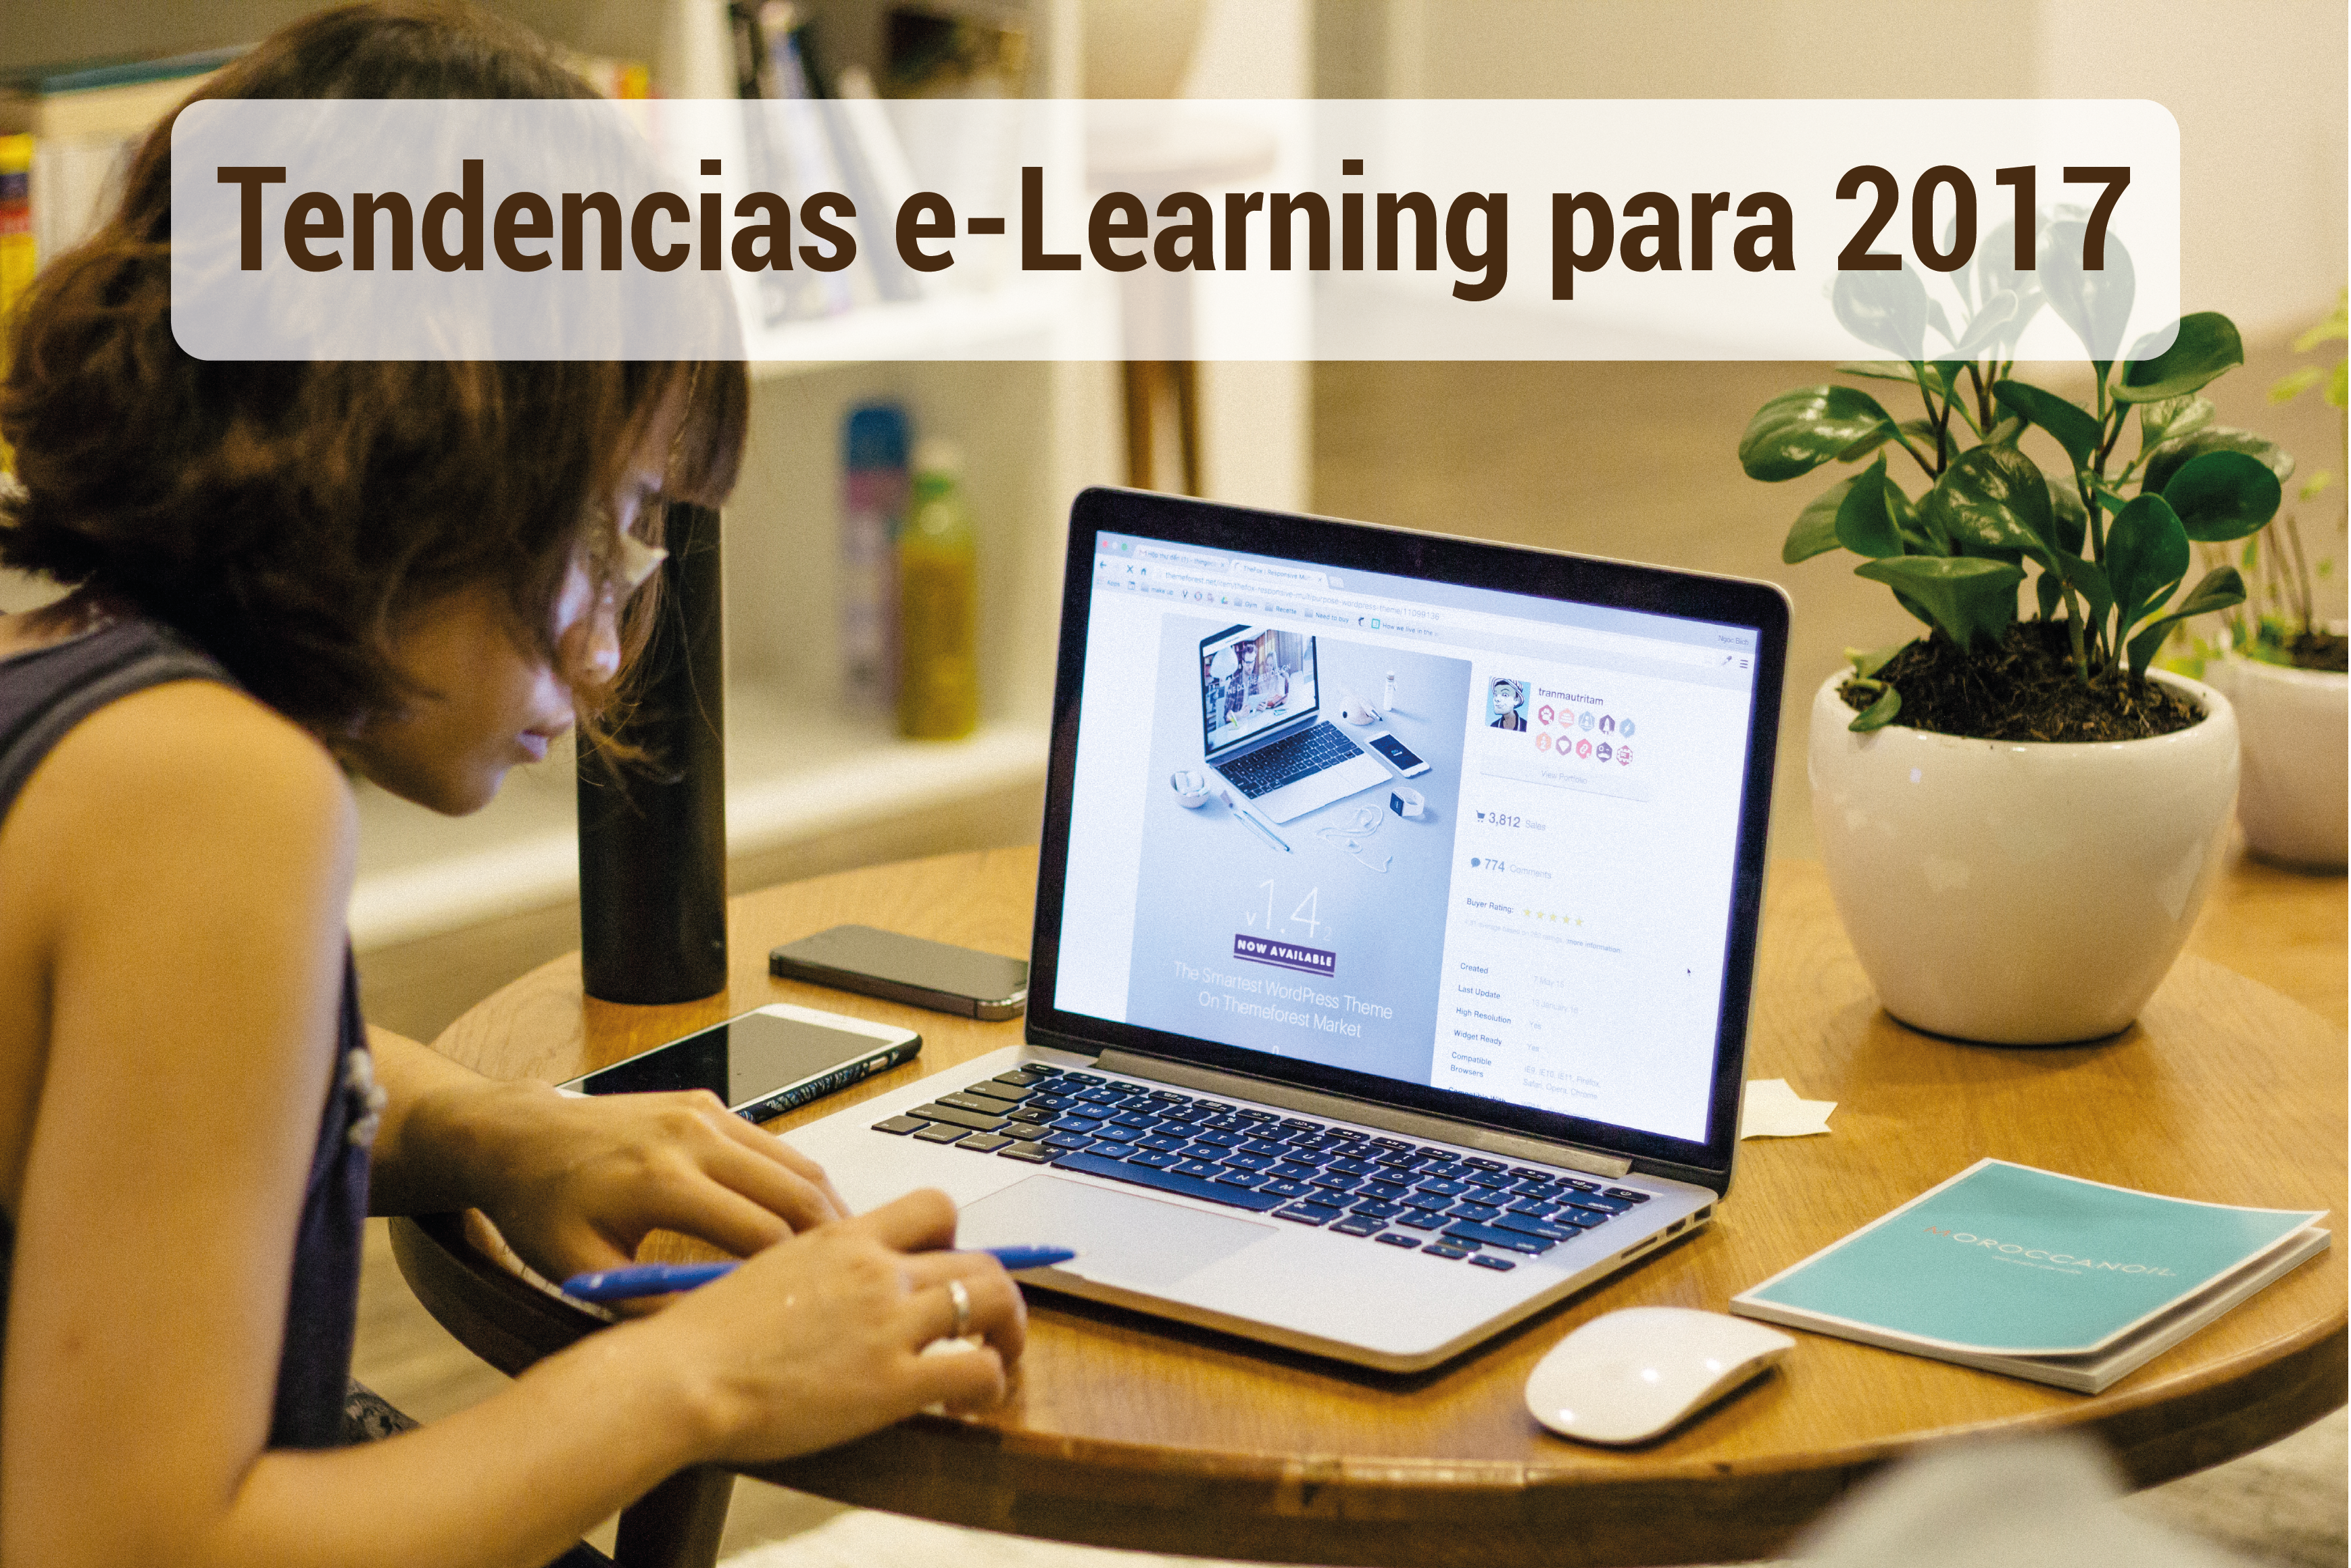 8 Tendencias educativas en e-Learning para 2017